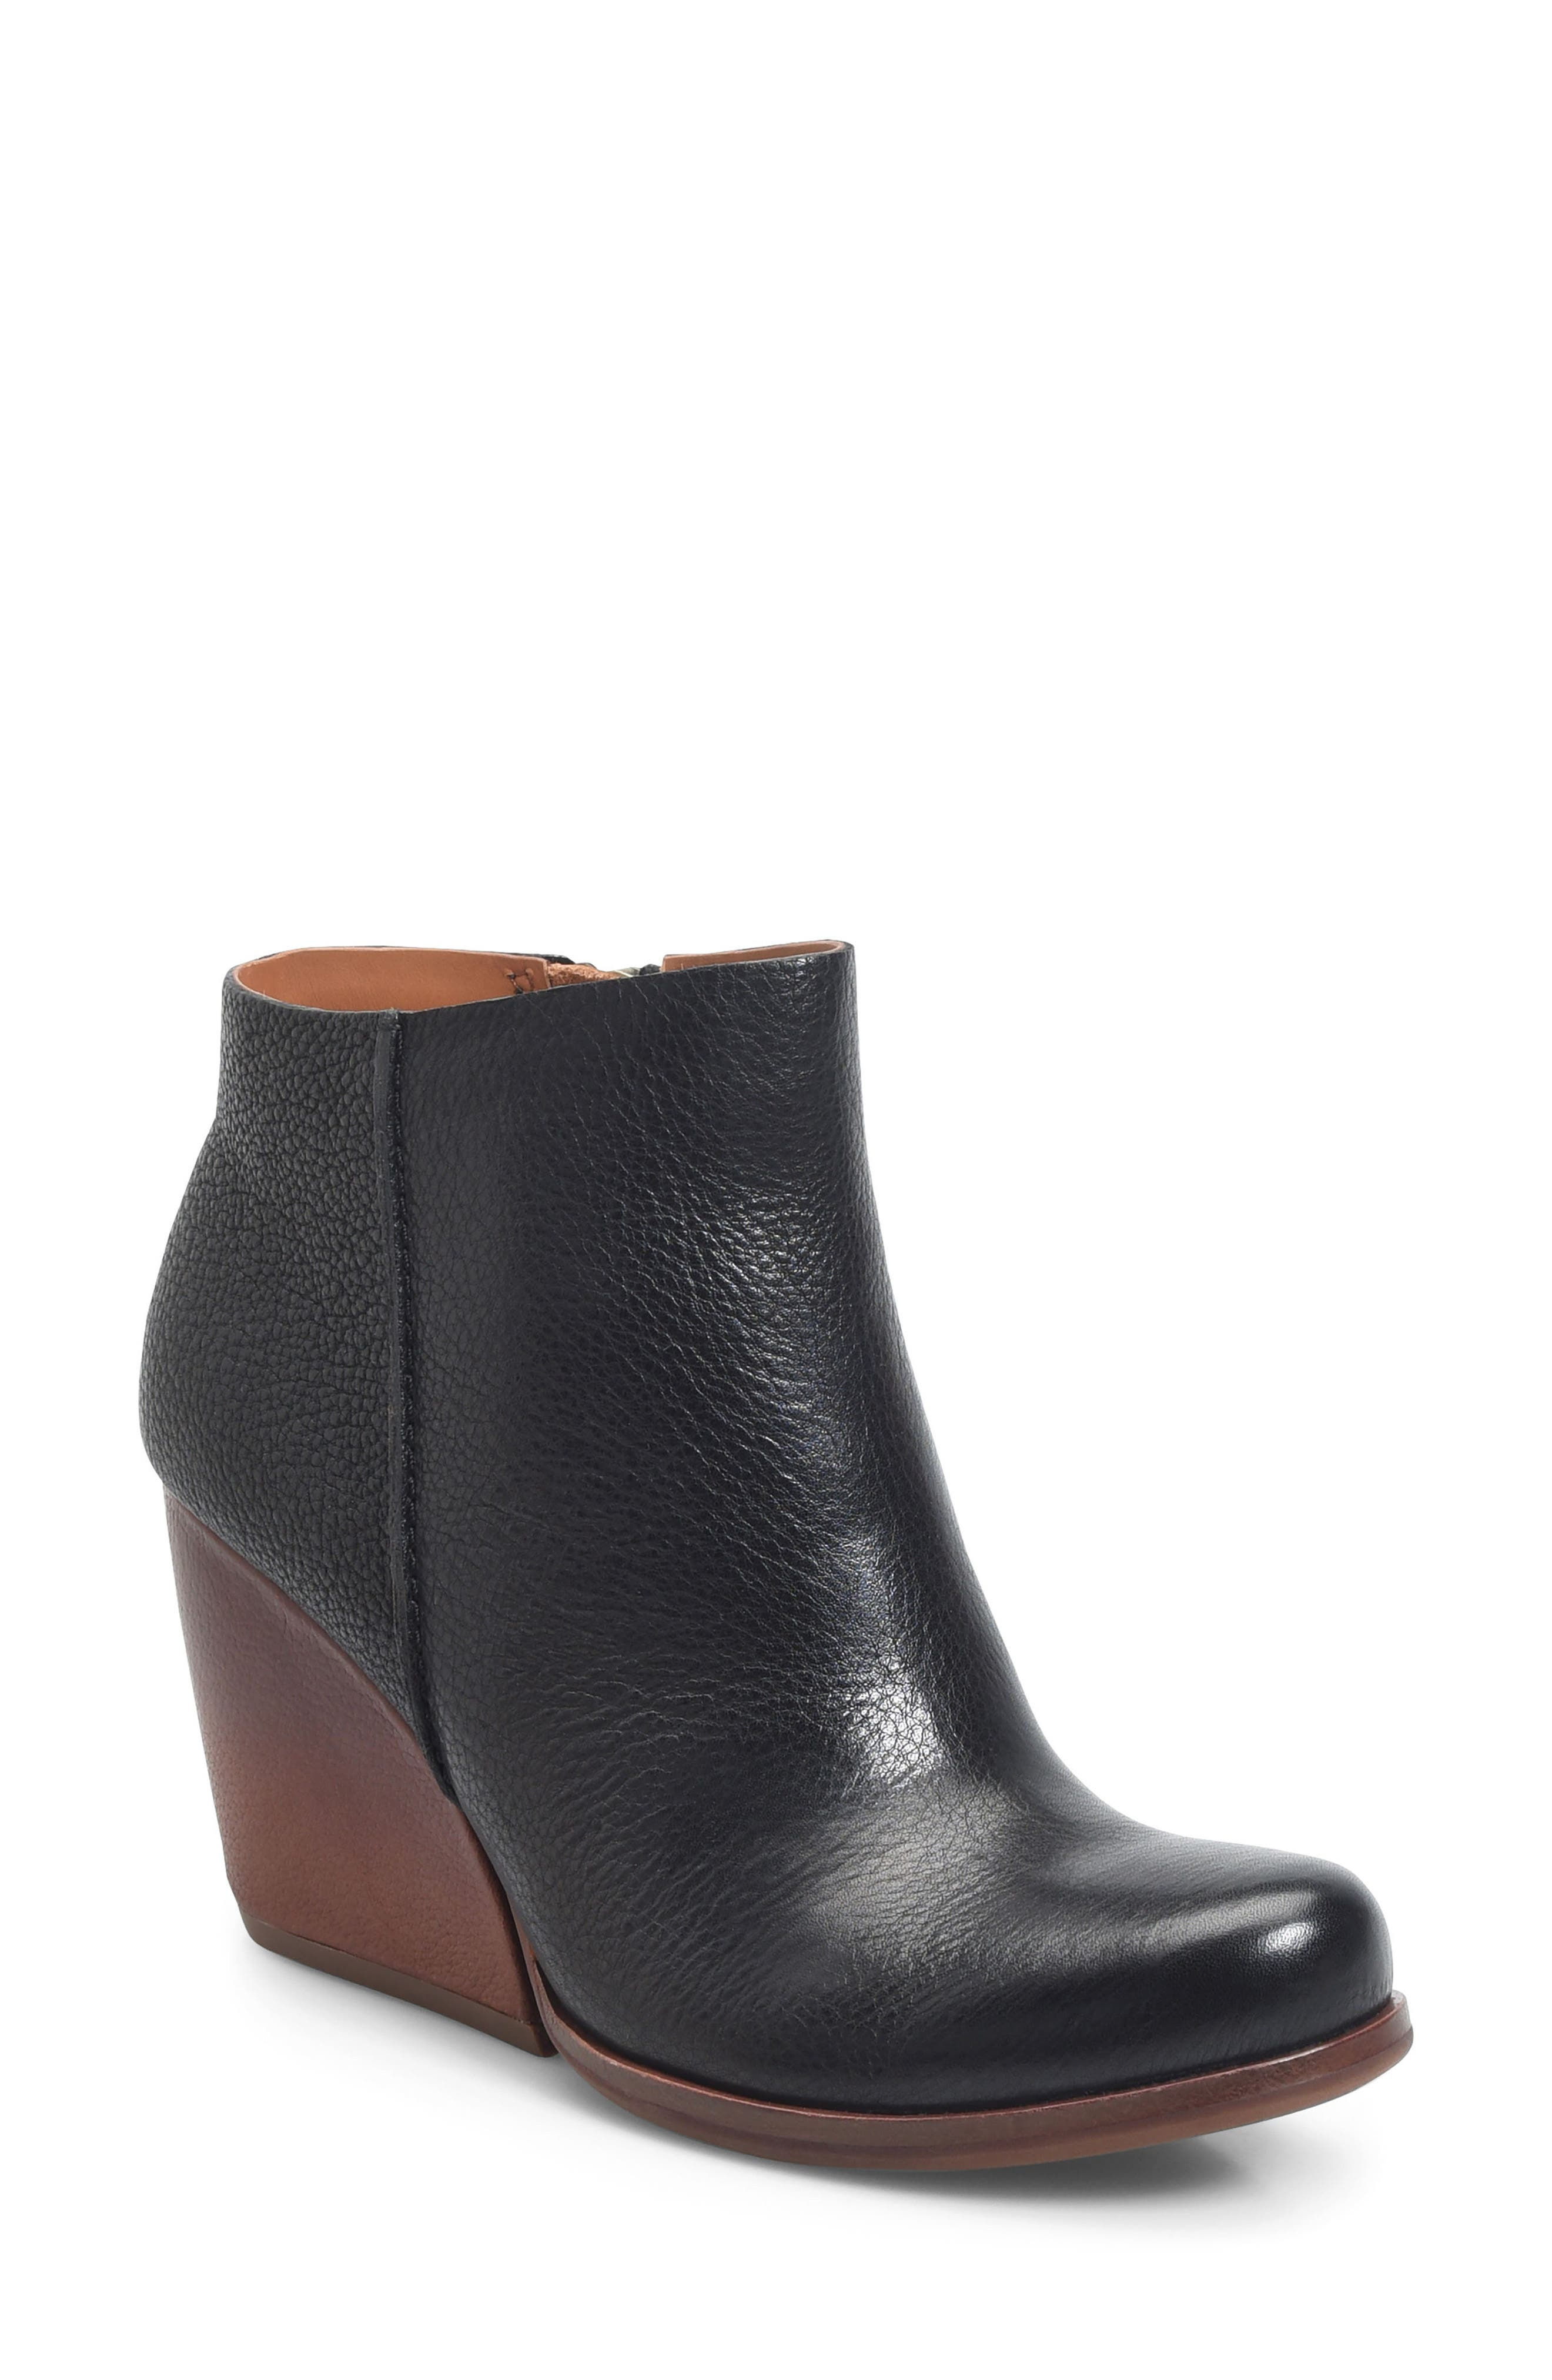 Natalya Wedge Bootie,                         Main,                         color, Black Leather